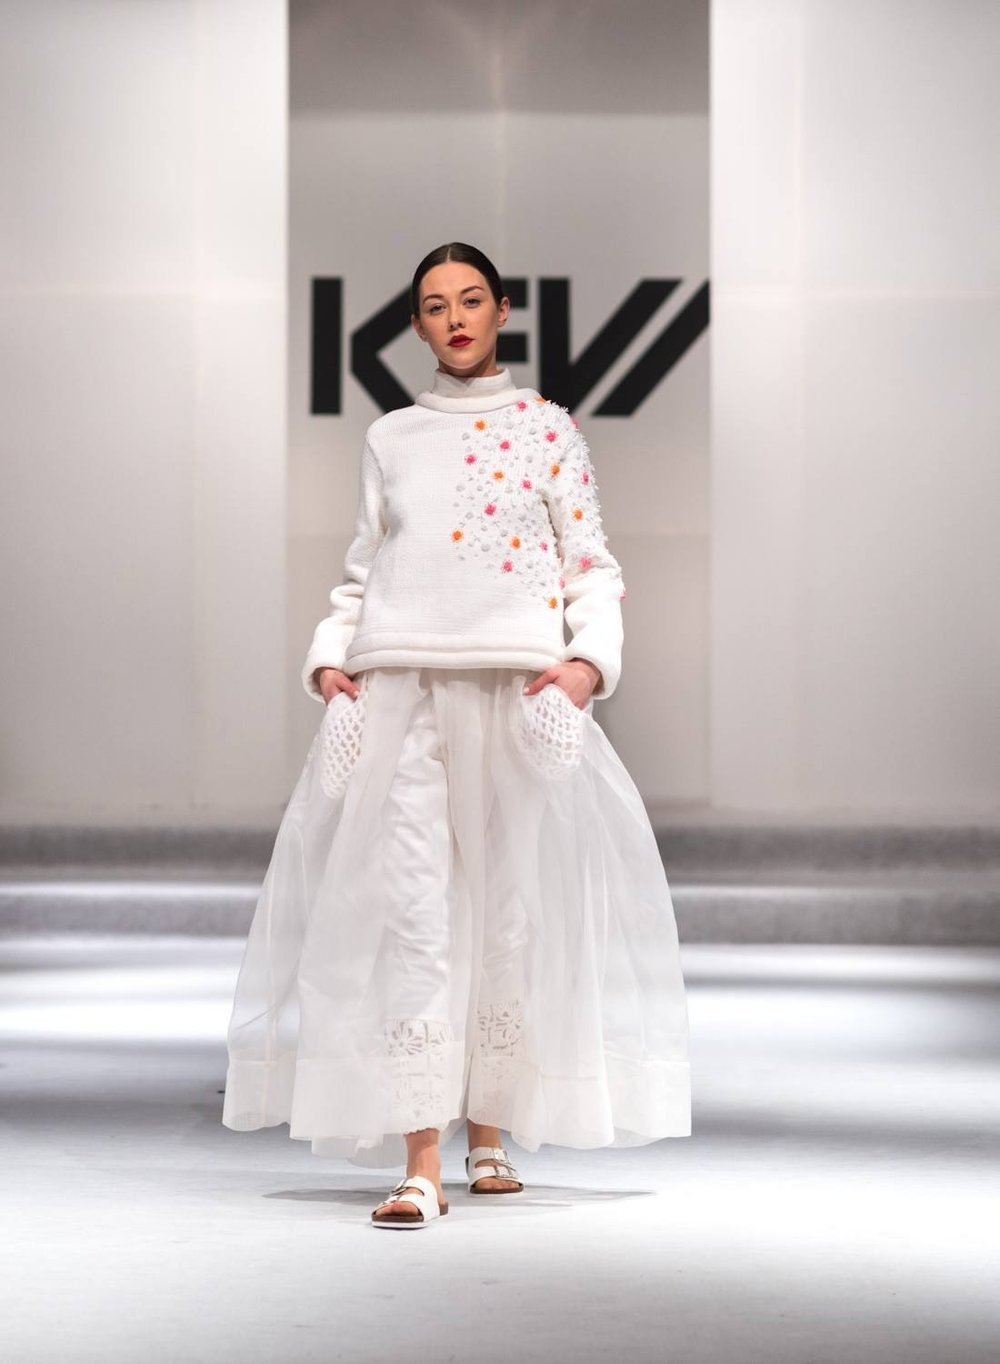 Aishling at KFW. Photo Credit: Pawel Nowak